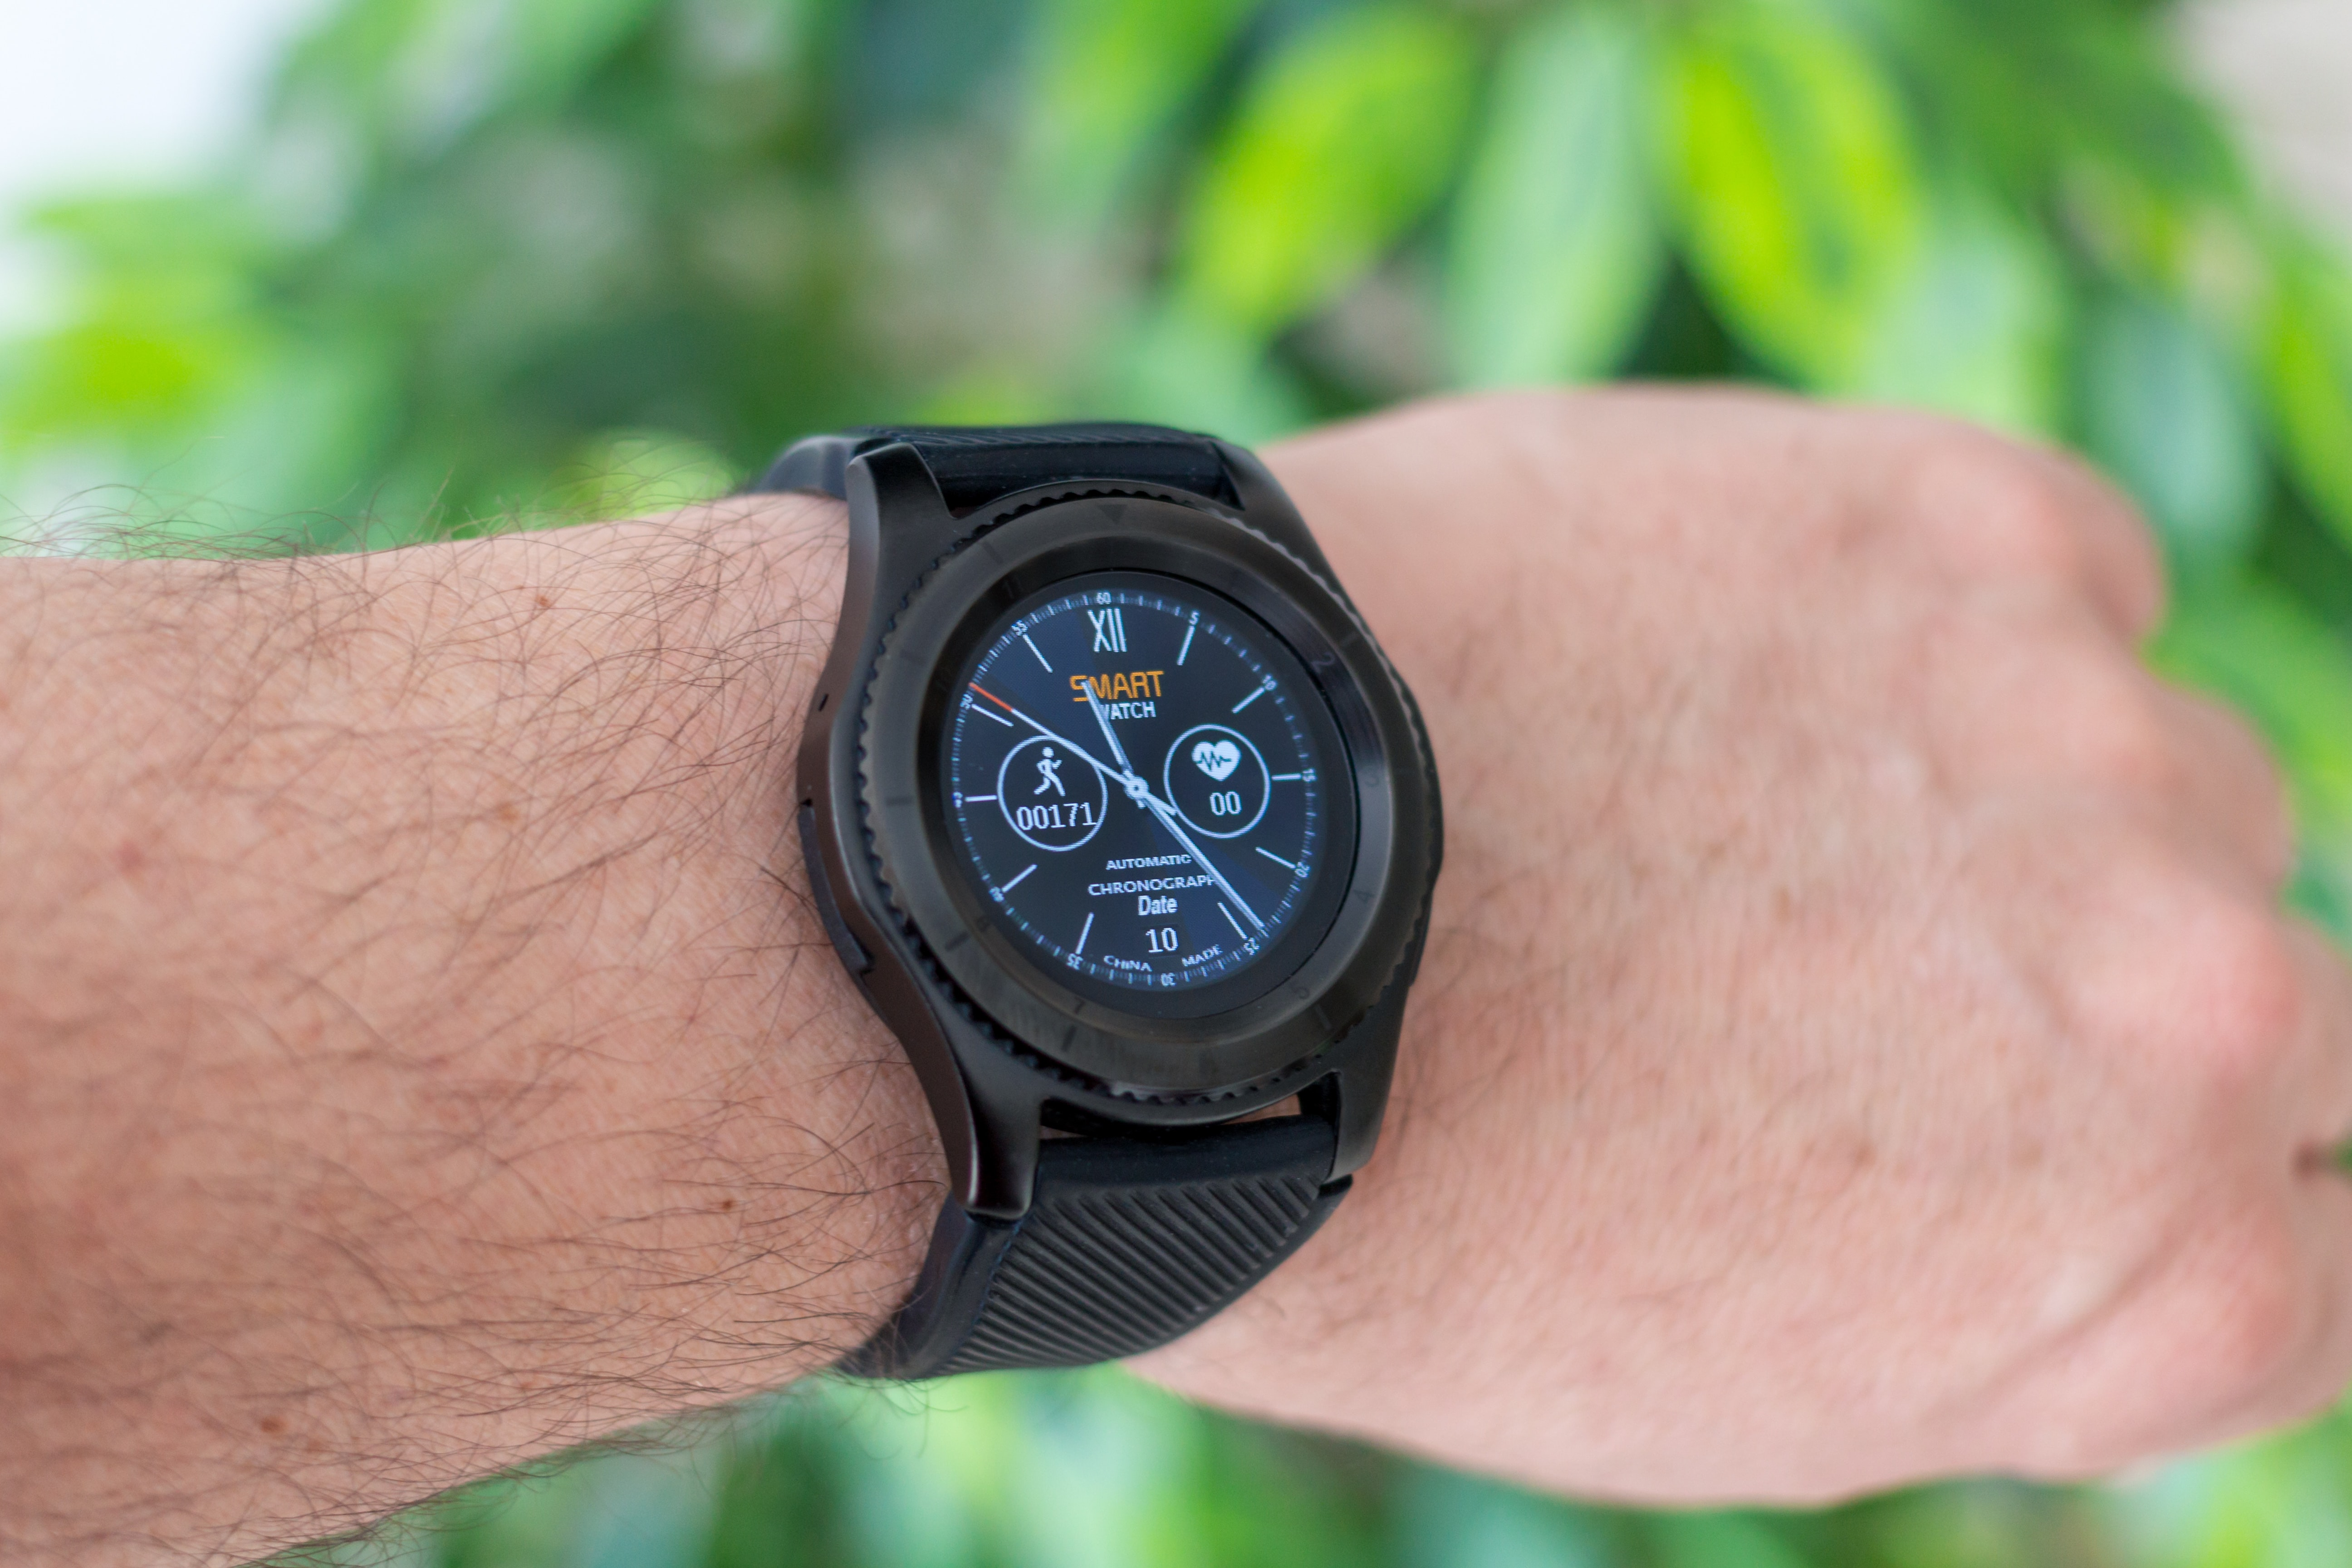 person wearing black smartwatch